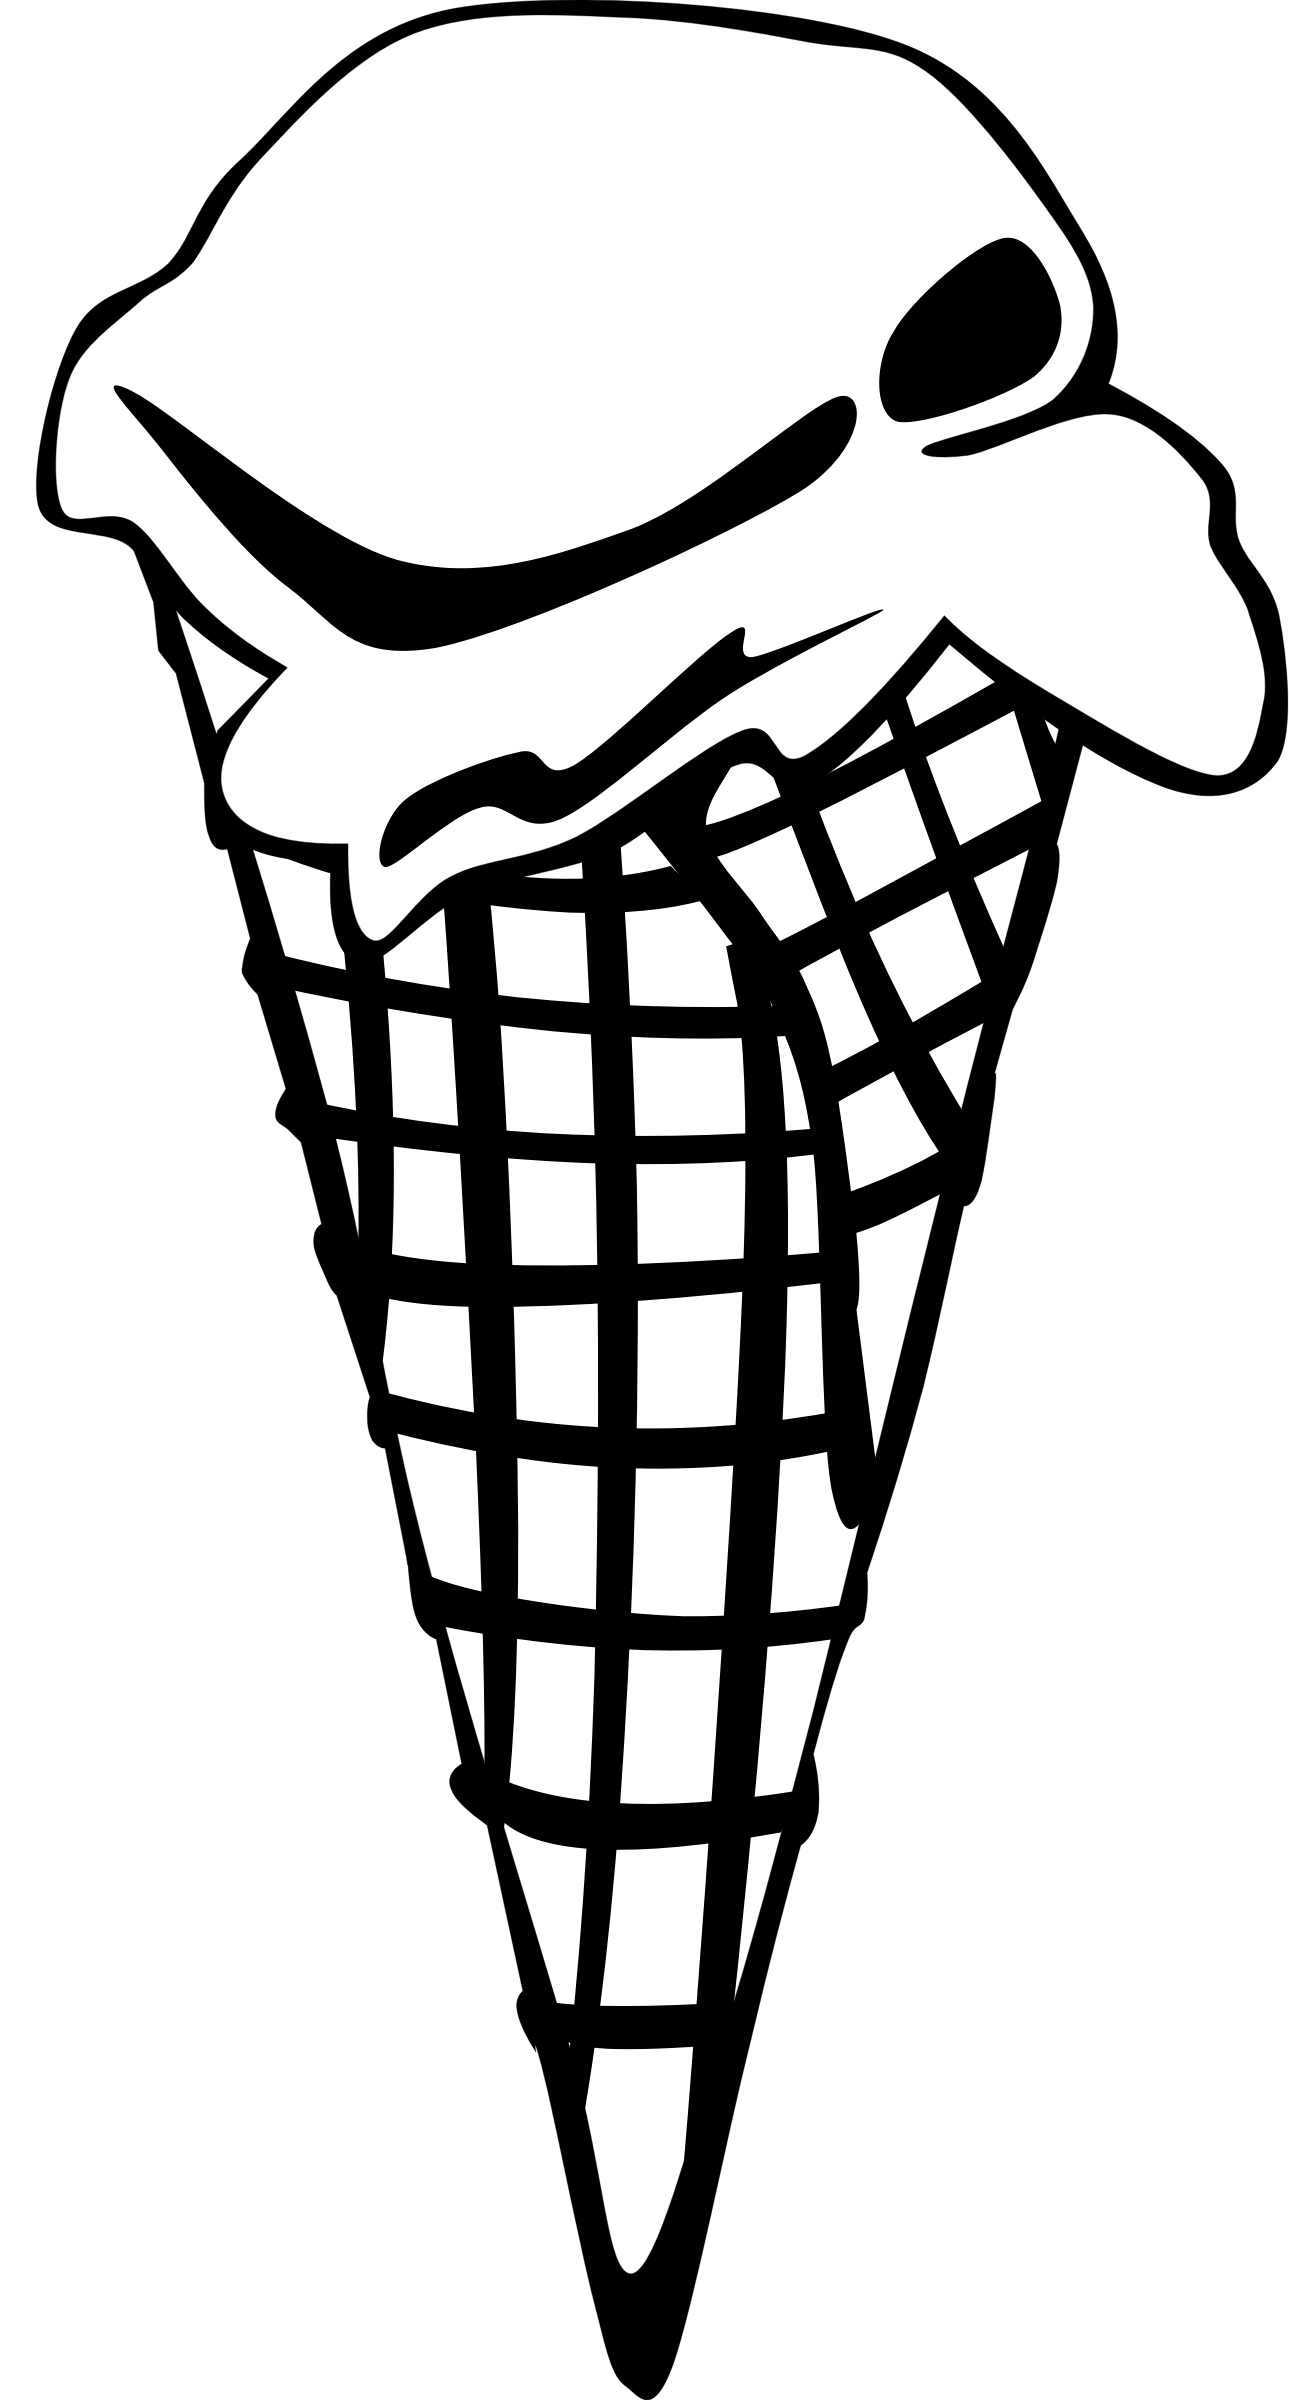 Waffle Cone clipart coloring page Waffle Food Single BIG (PNG)